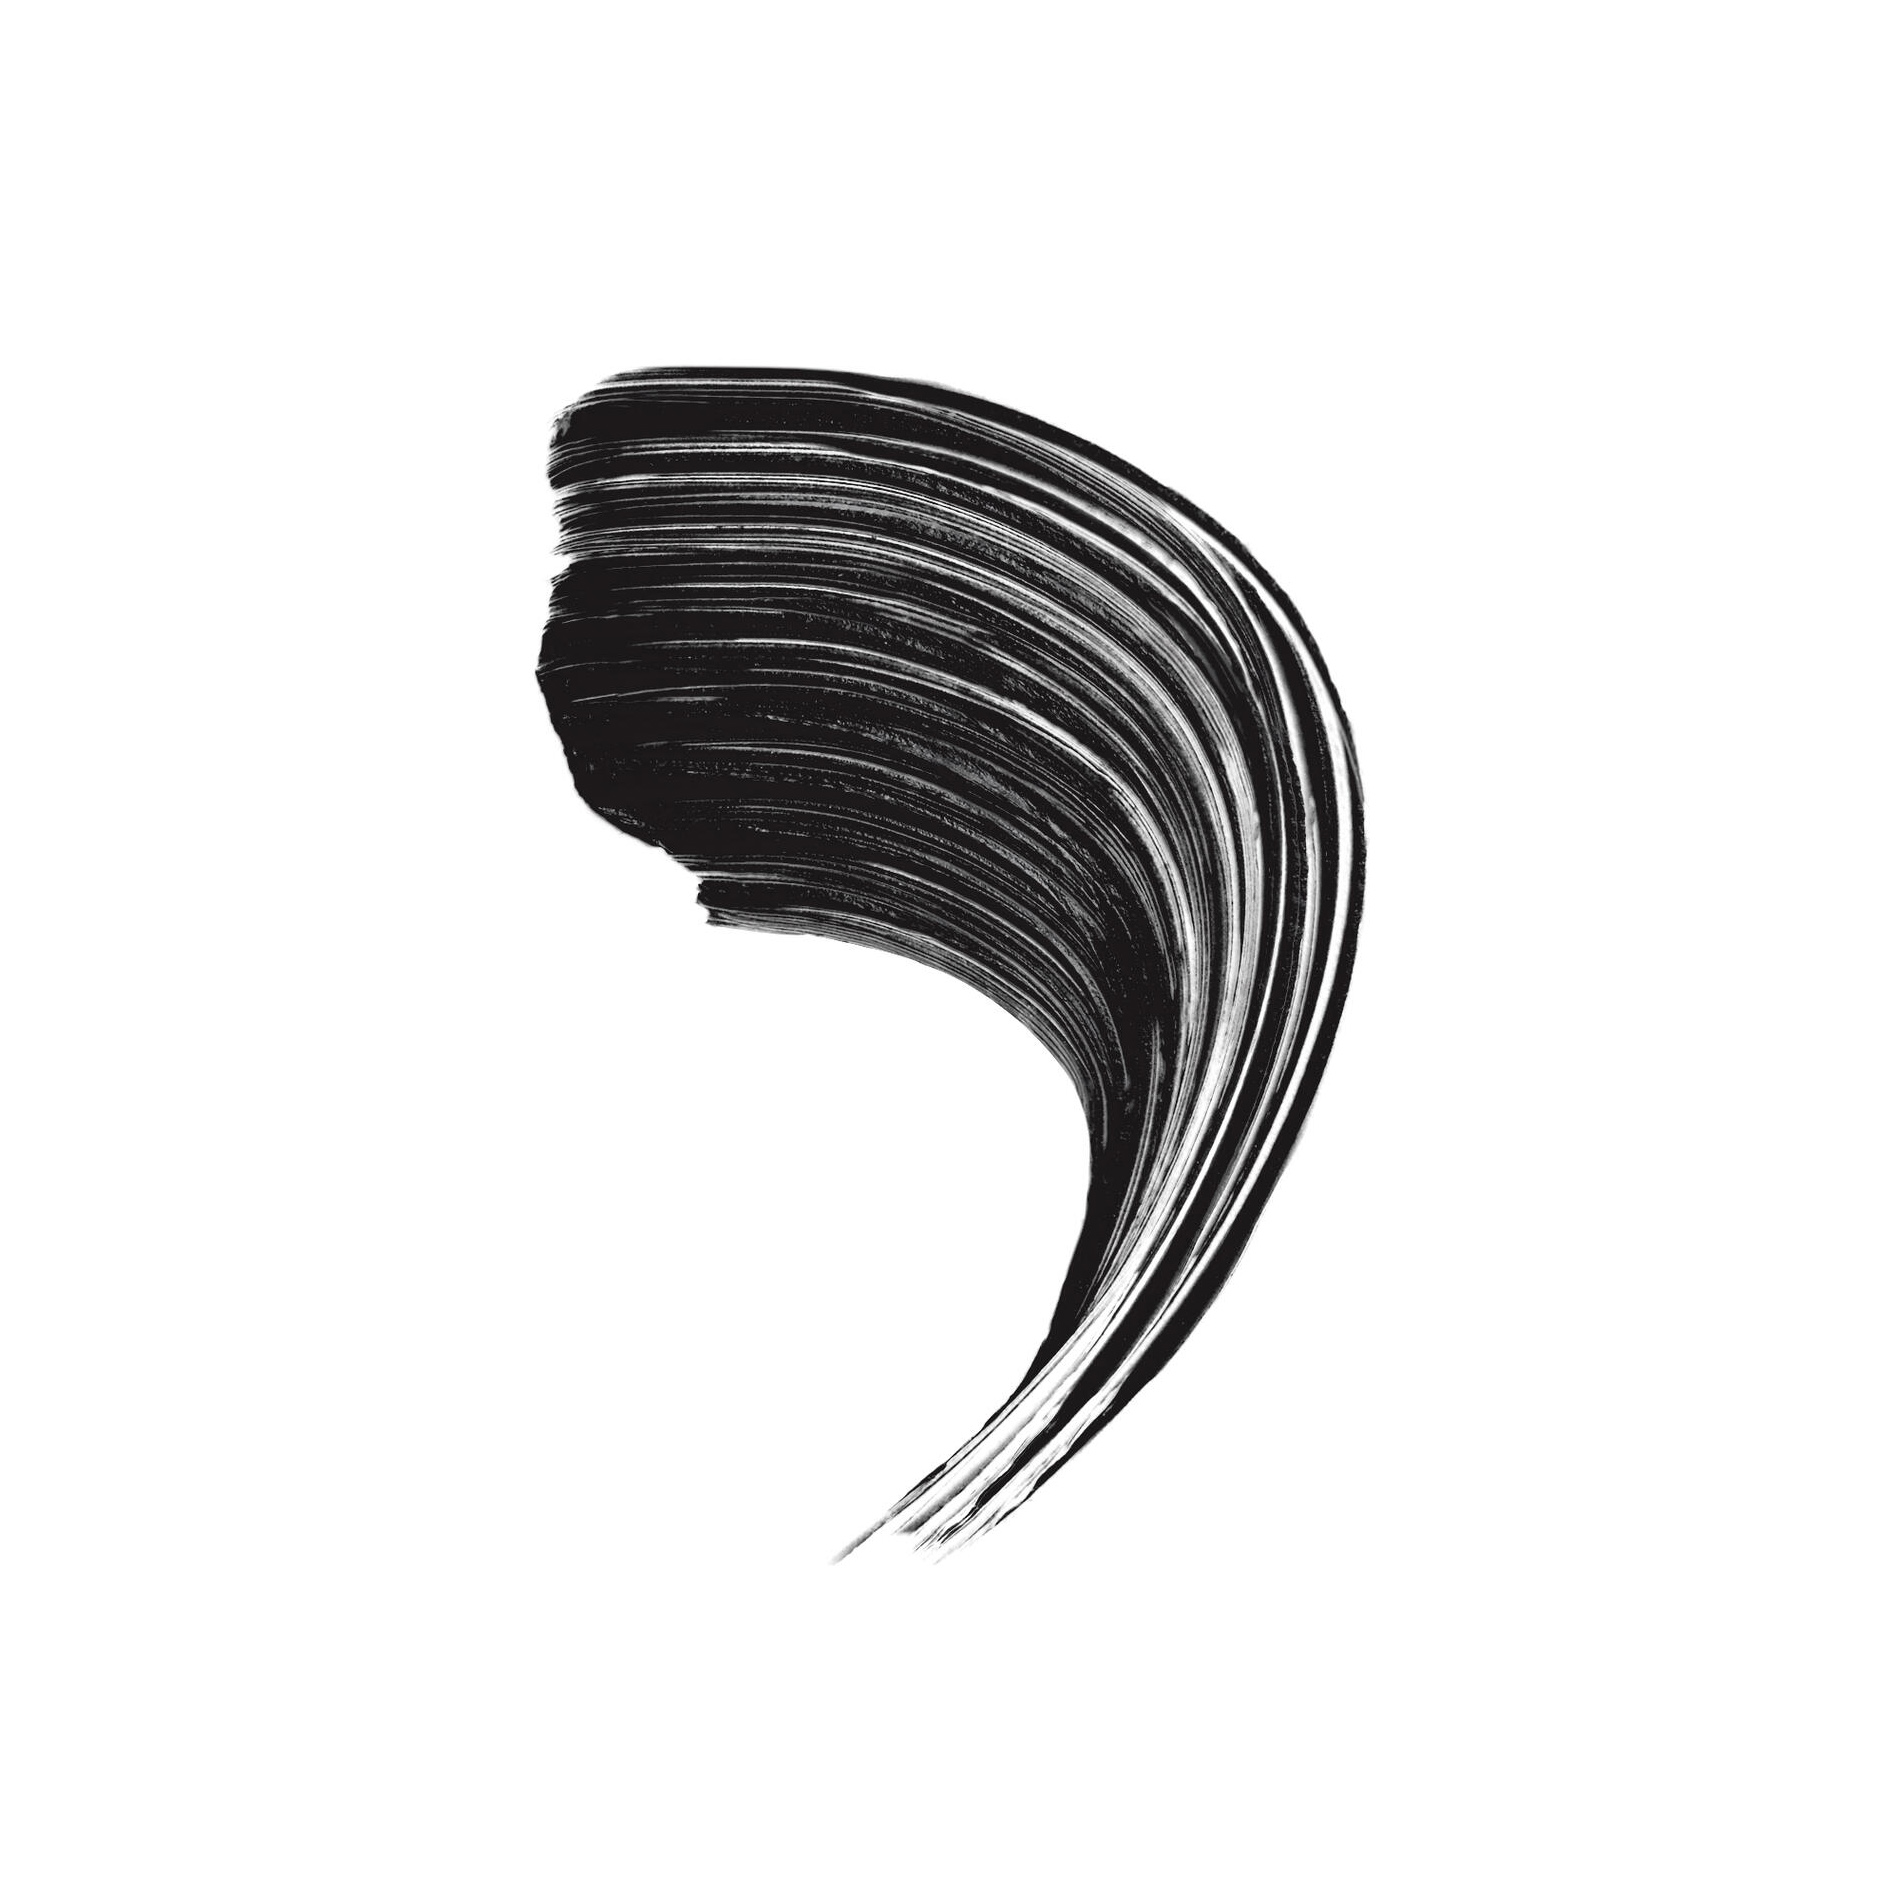 A curving swipe of black mascara showing the texture of the product and the payout style of the brush